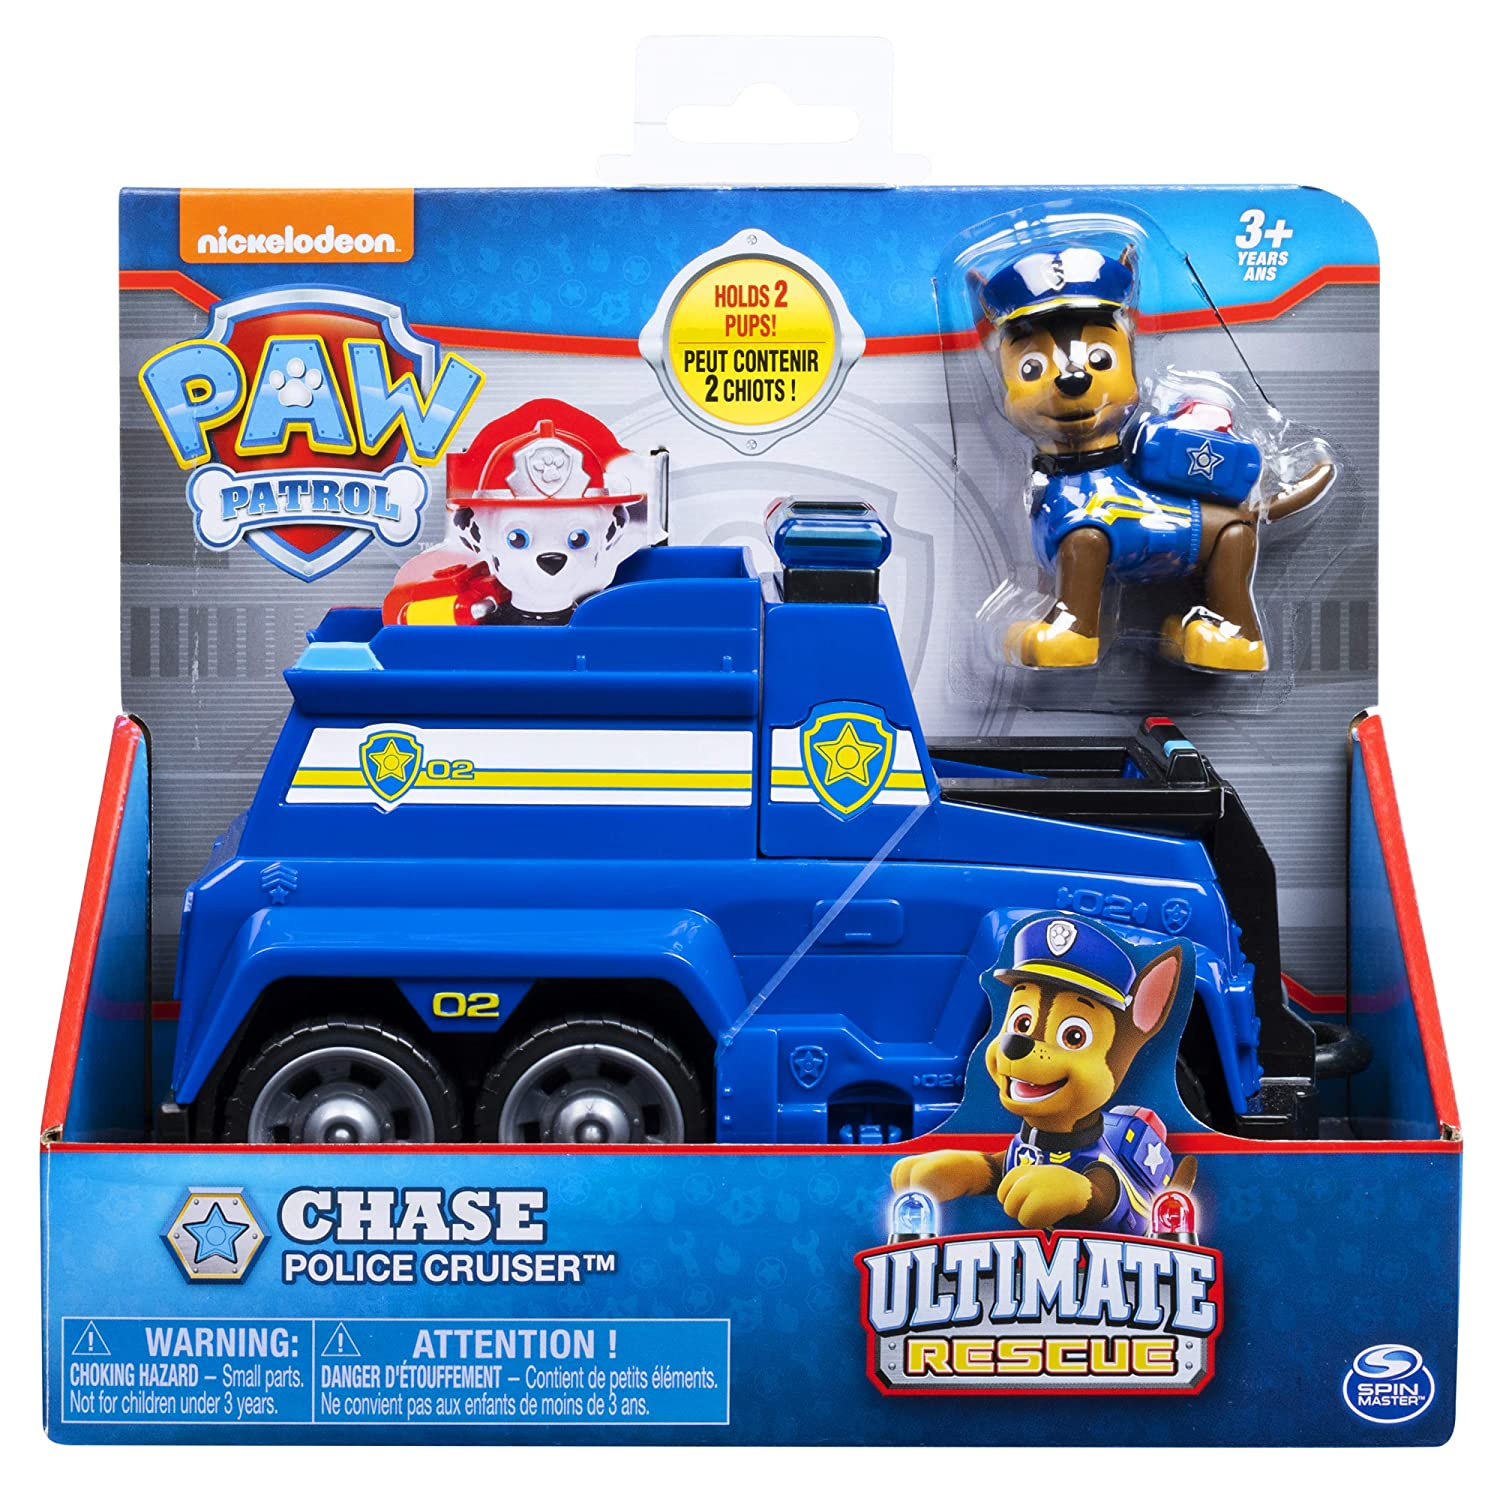 PAW Patrol Chases Ultimate Rescue Police Cruiser with Lifting Seat and Fold-Out Barricade for Ages 3 and Up